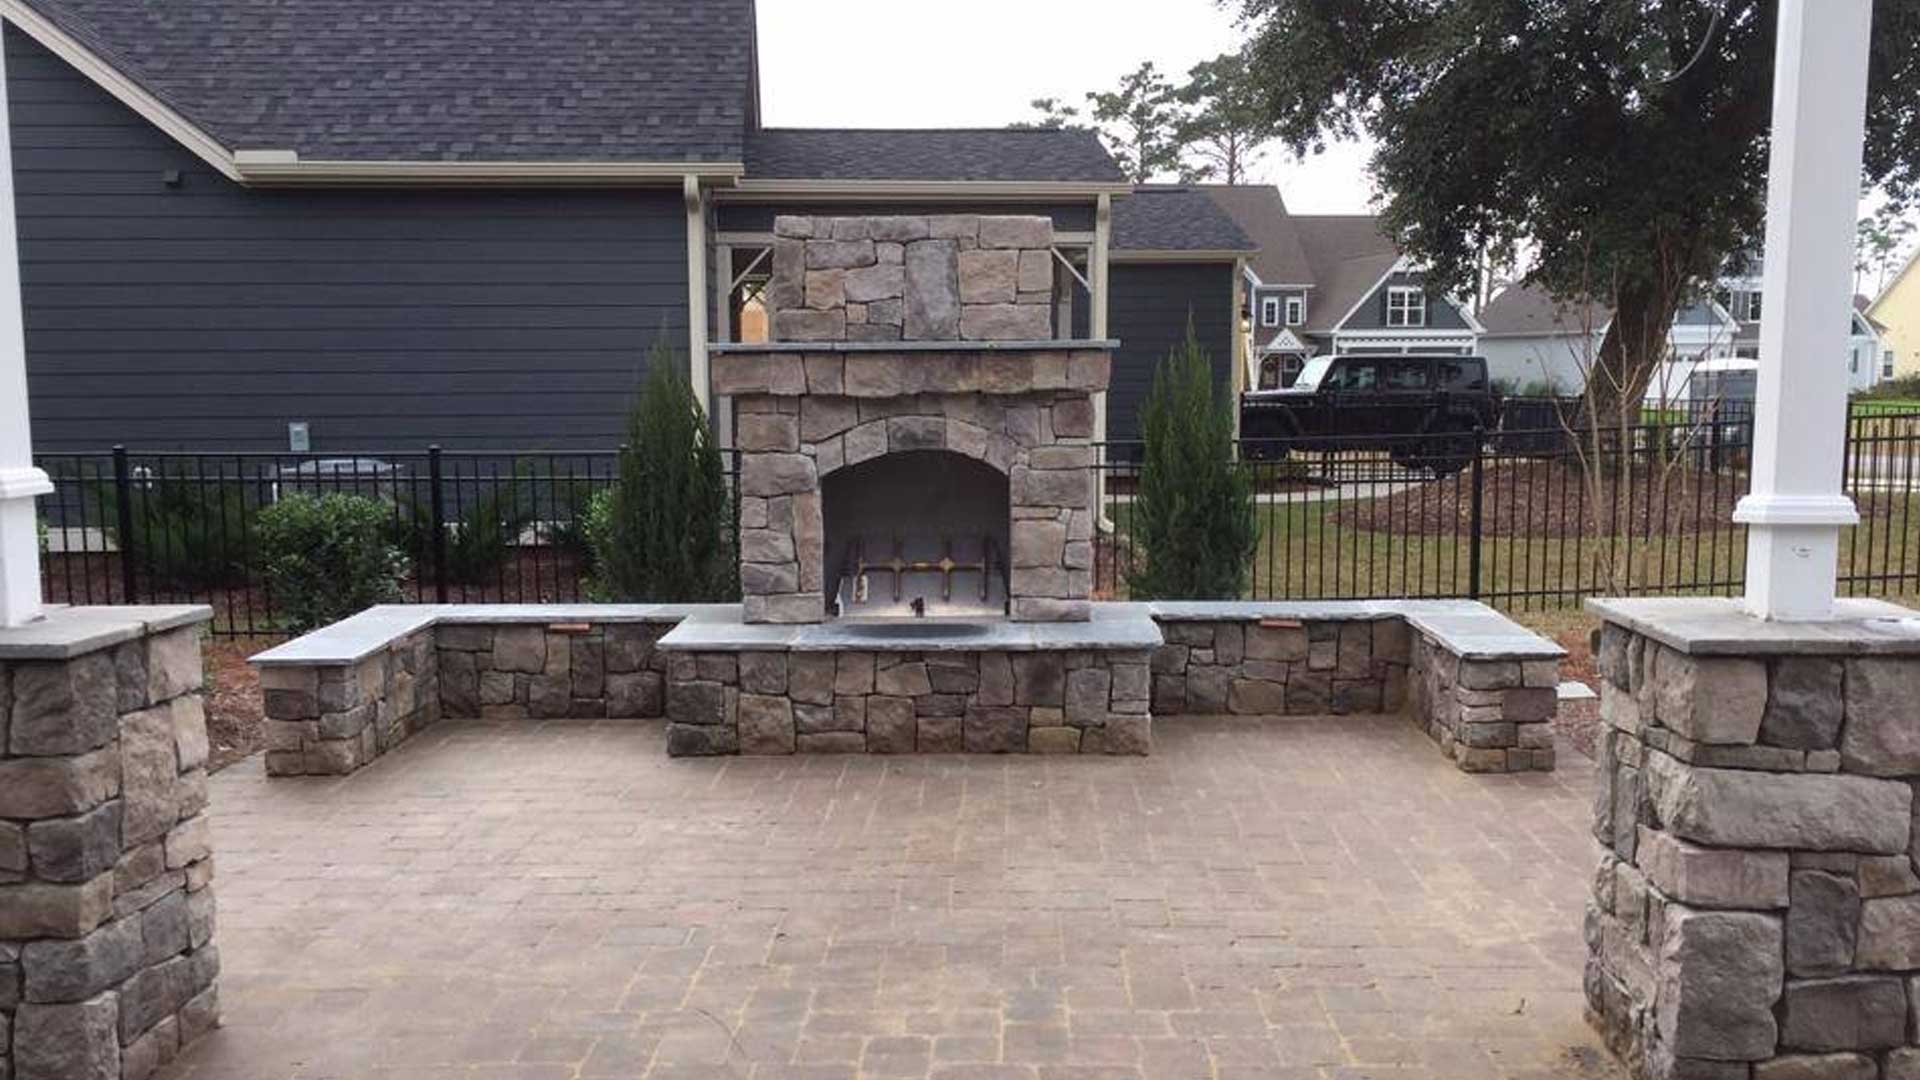 Outdoor fireplace with a paver patio designed and installed by our team of professionals.